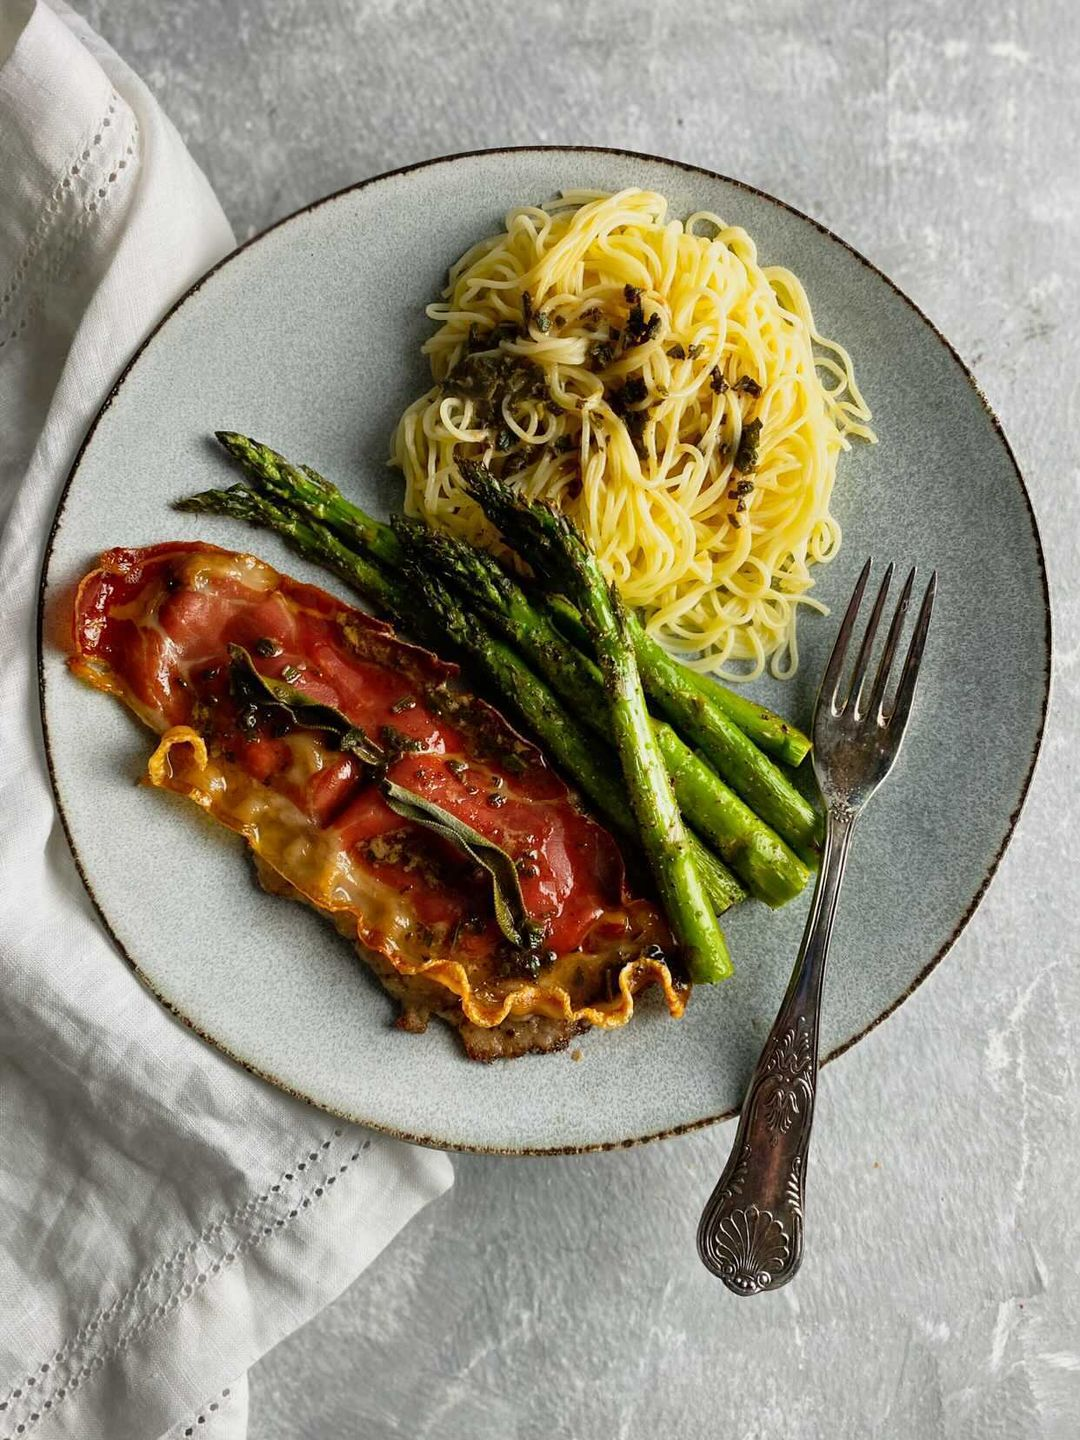 a blue plate with veal, asparagus, and angel hair pasta